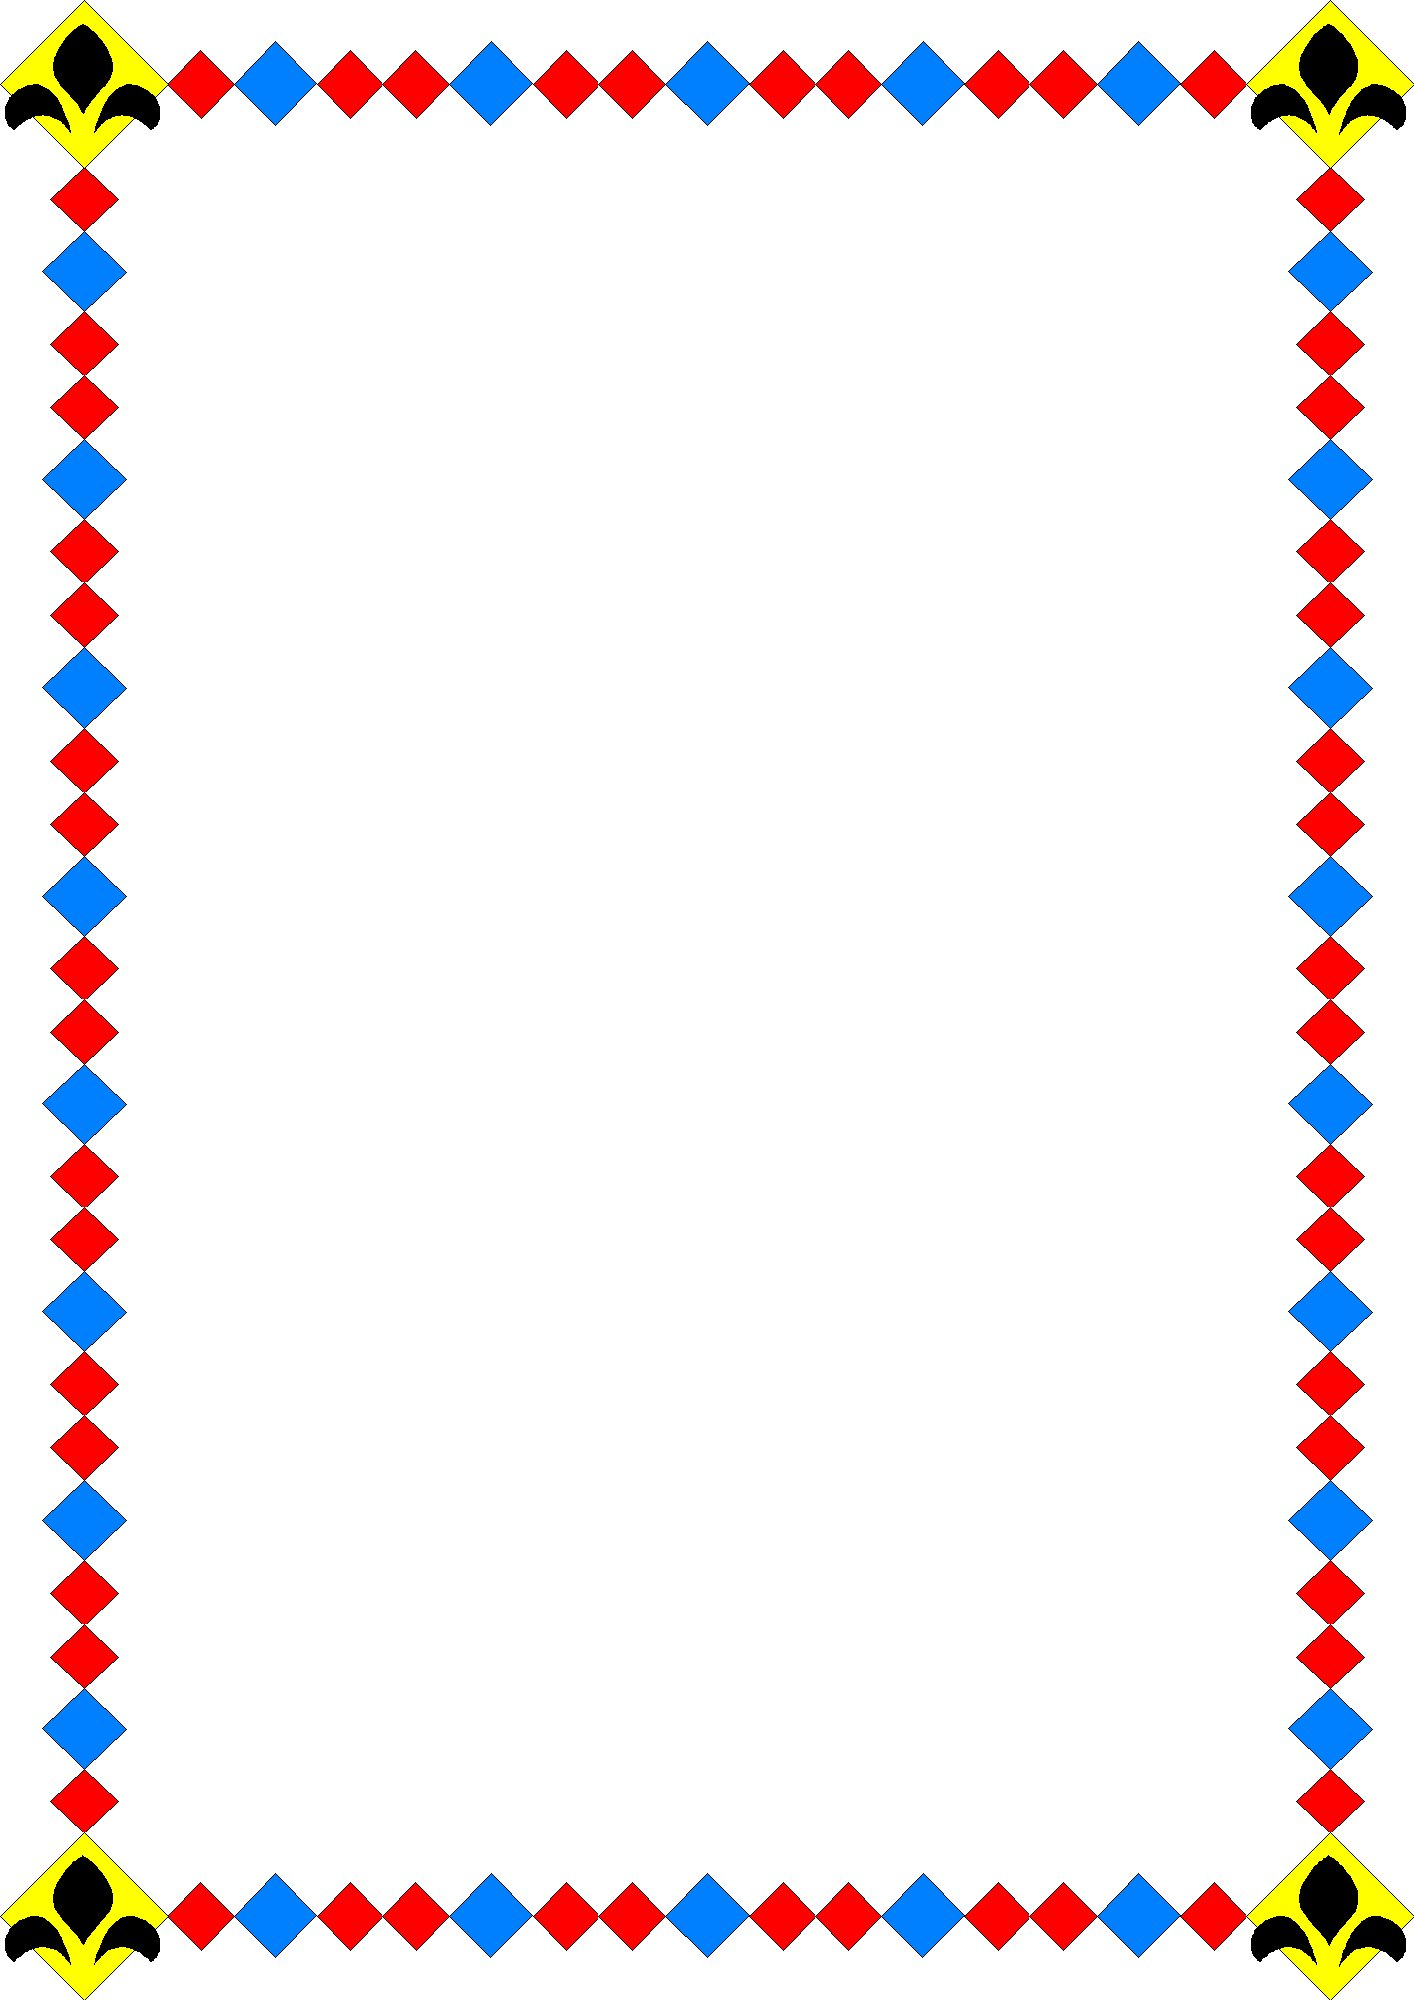 Borders clipart frame. Free border download clip